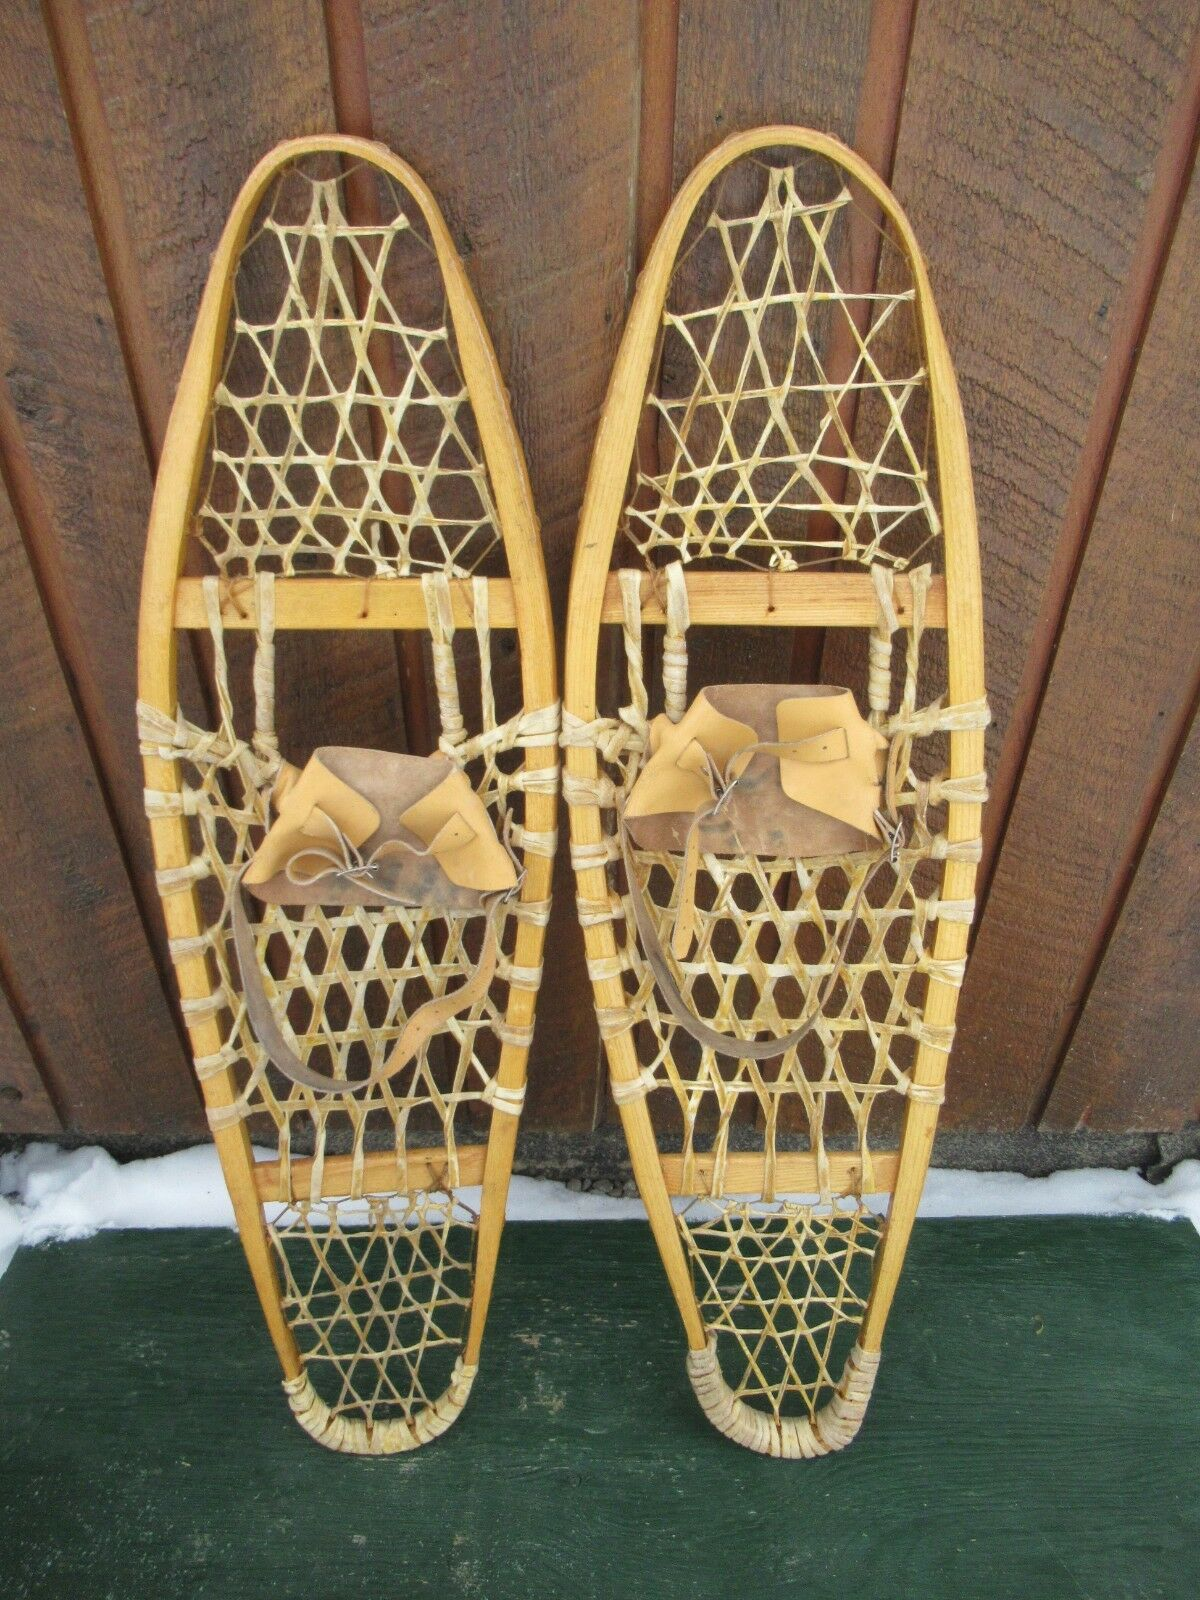 GREAT Snowshoes 37  Long x 10  Wide with Leather Binding Ready to Use